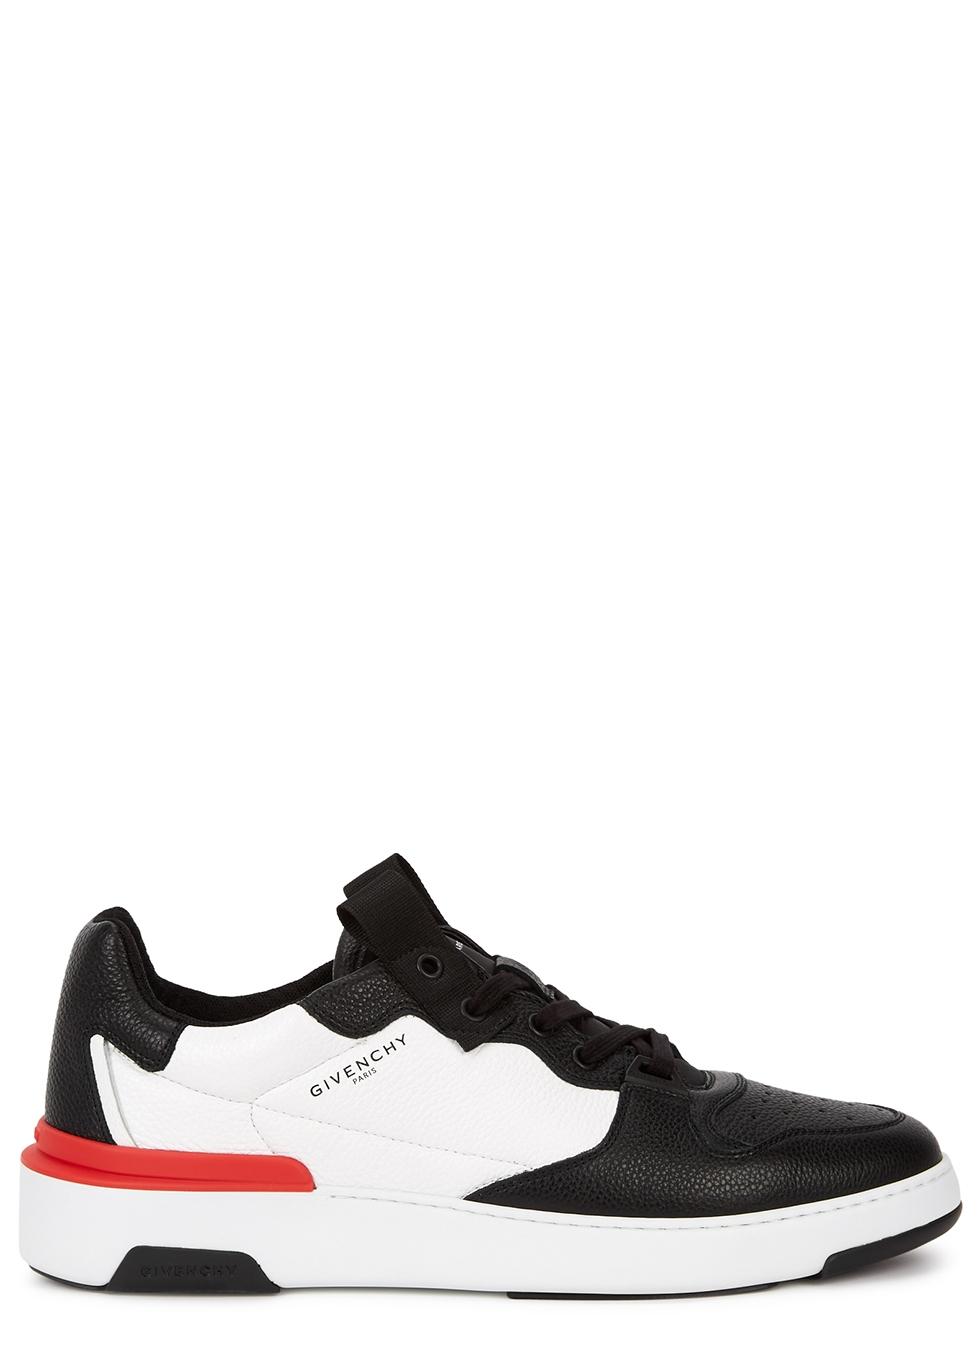 Wing monochrome leather sneakers